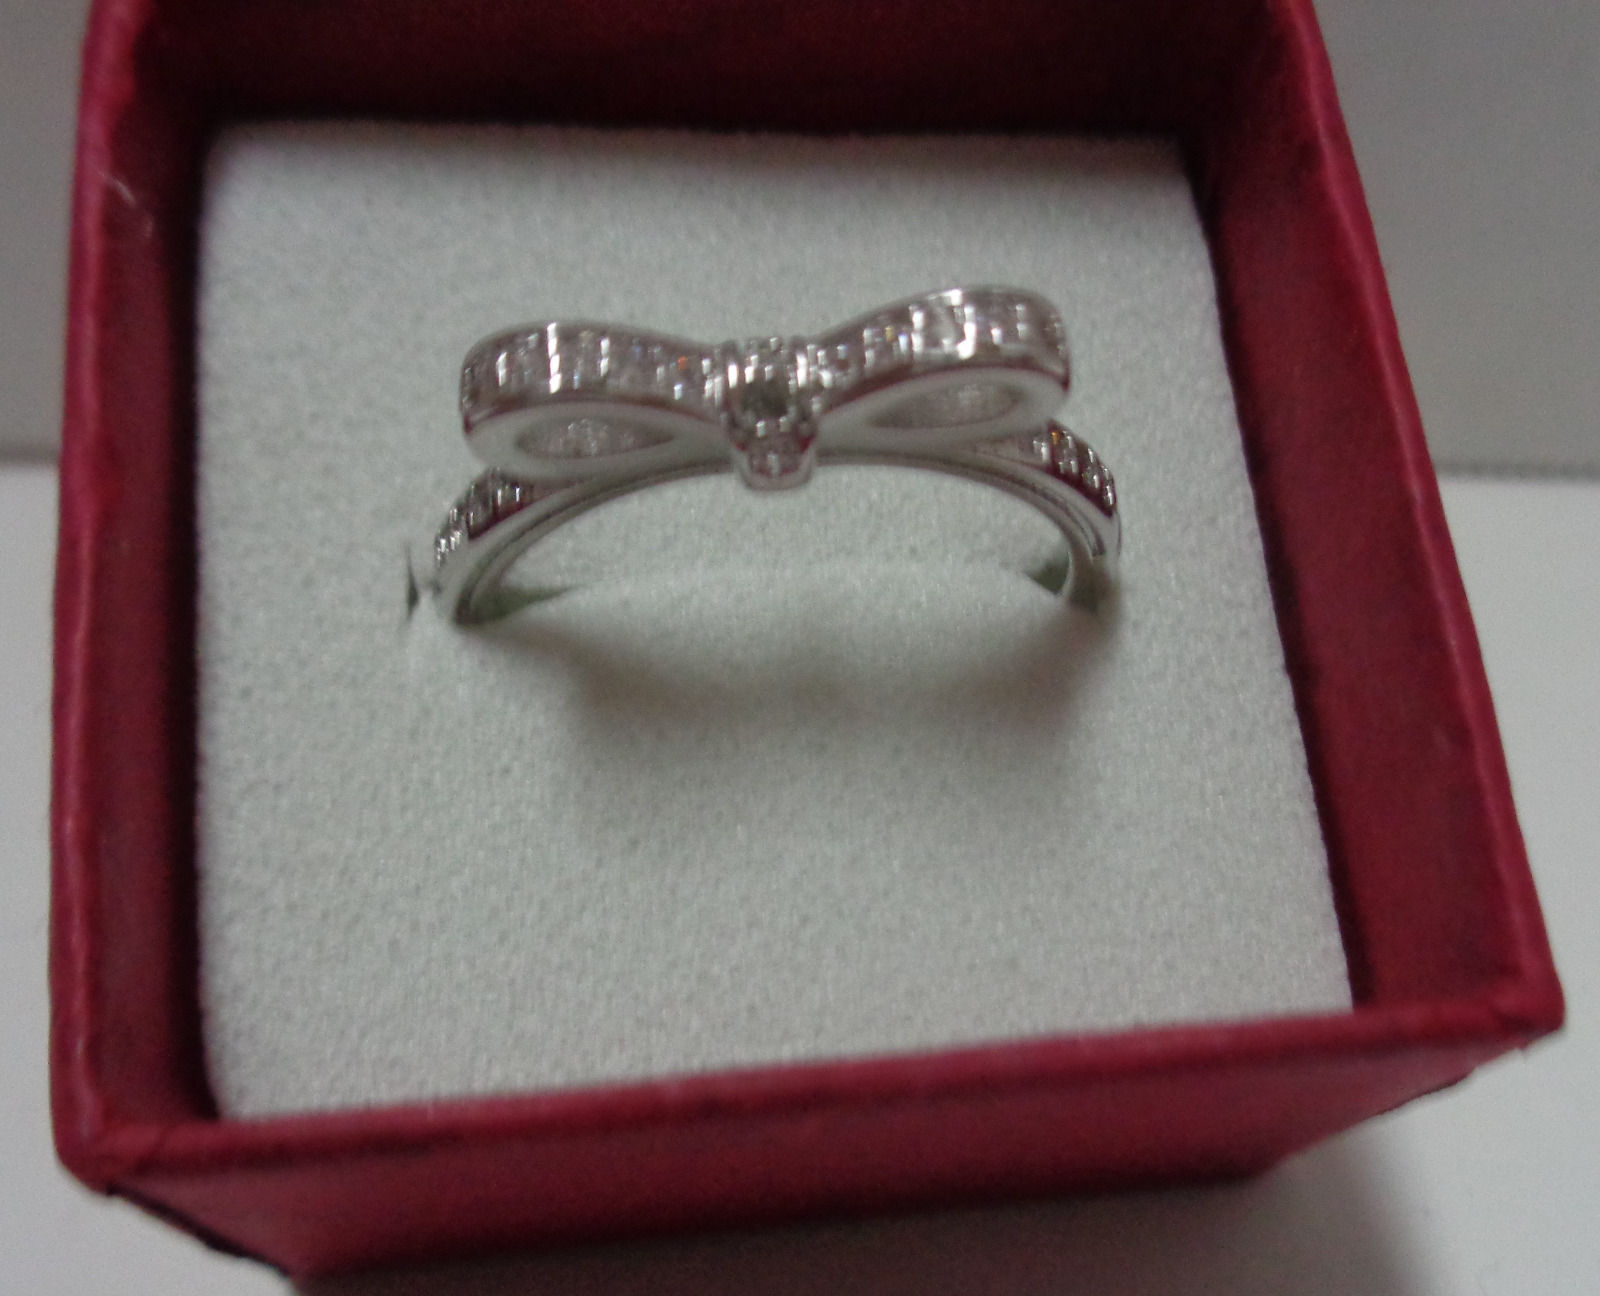 100% Sterling Silver 925 Sparkling Bow Ring Women's Size 8 NIB